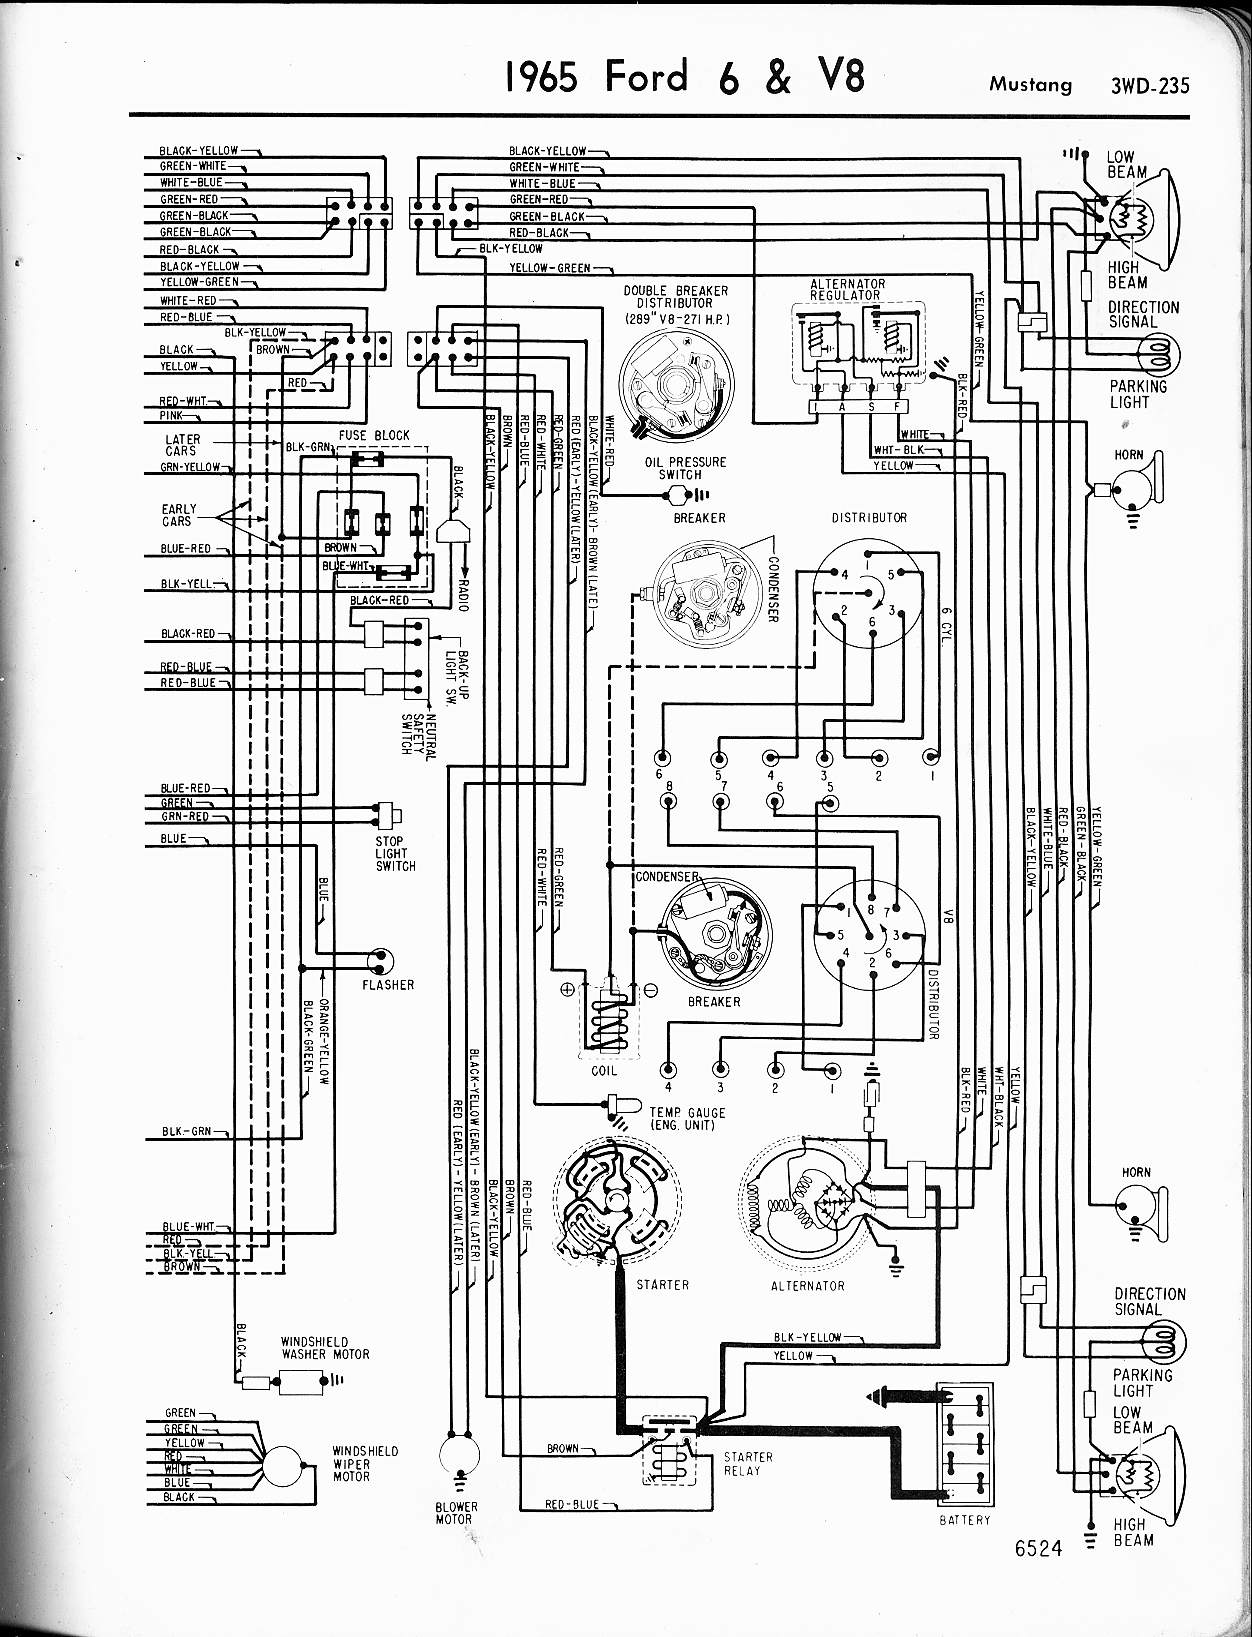 MWire5765 235 1967 thunderbird turn signal diagram wiring schematic on 1967 Cub Cadet 100 at aneh.co